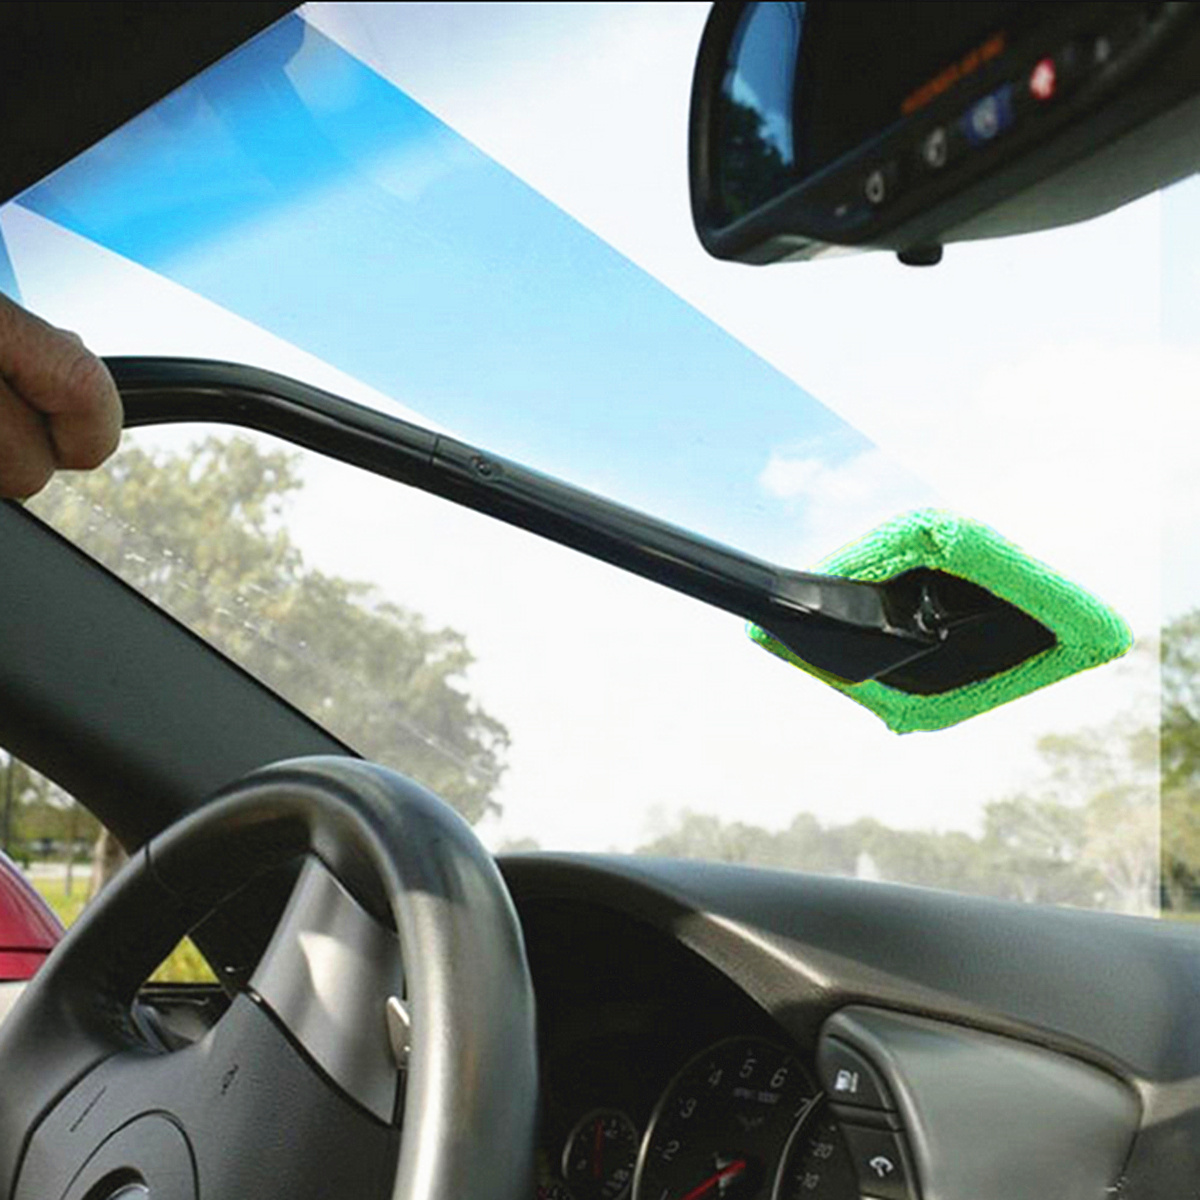 Car Auto Long Handle Wiper Cleaner Glass Window Microfiber Wind Shield Clean Brush